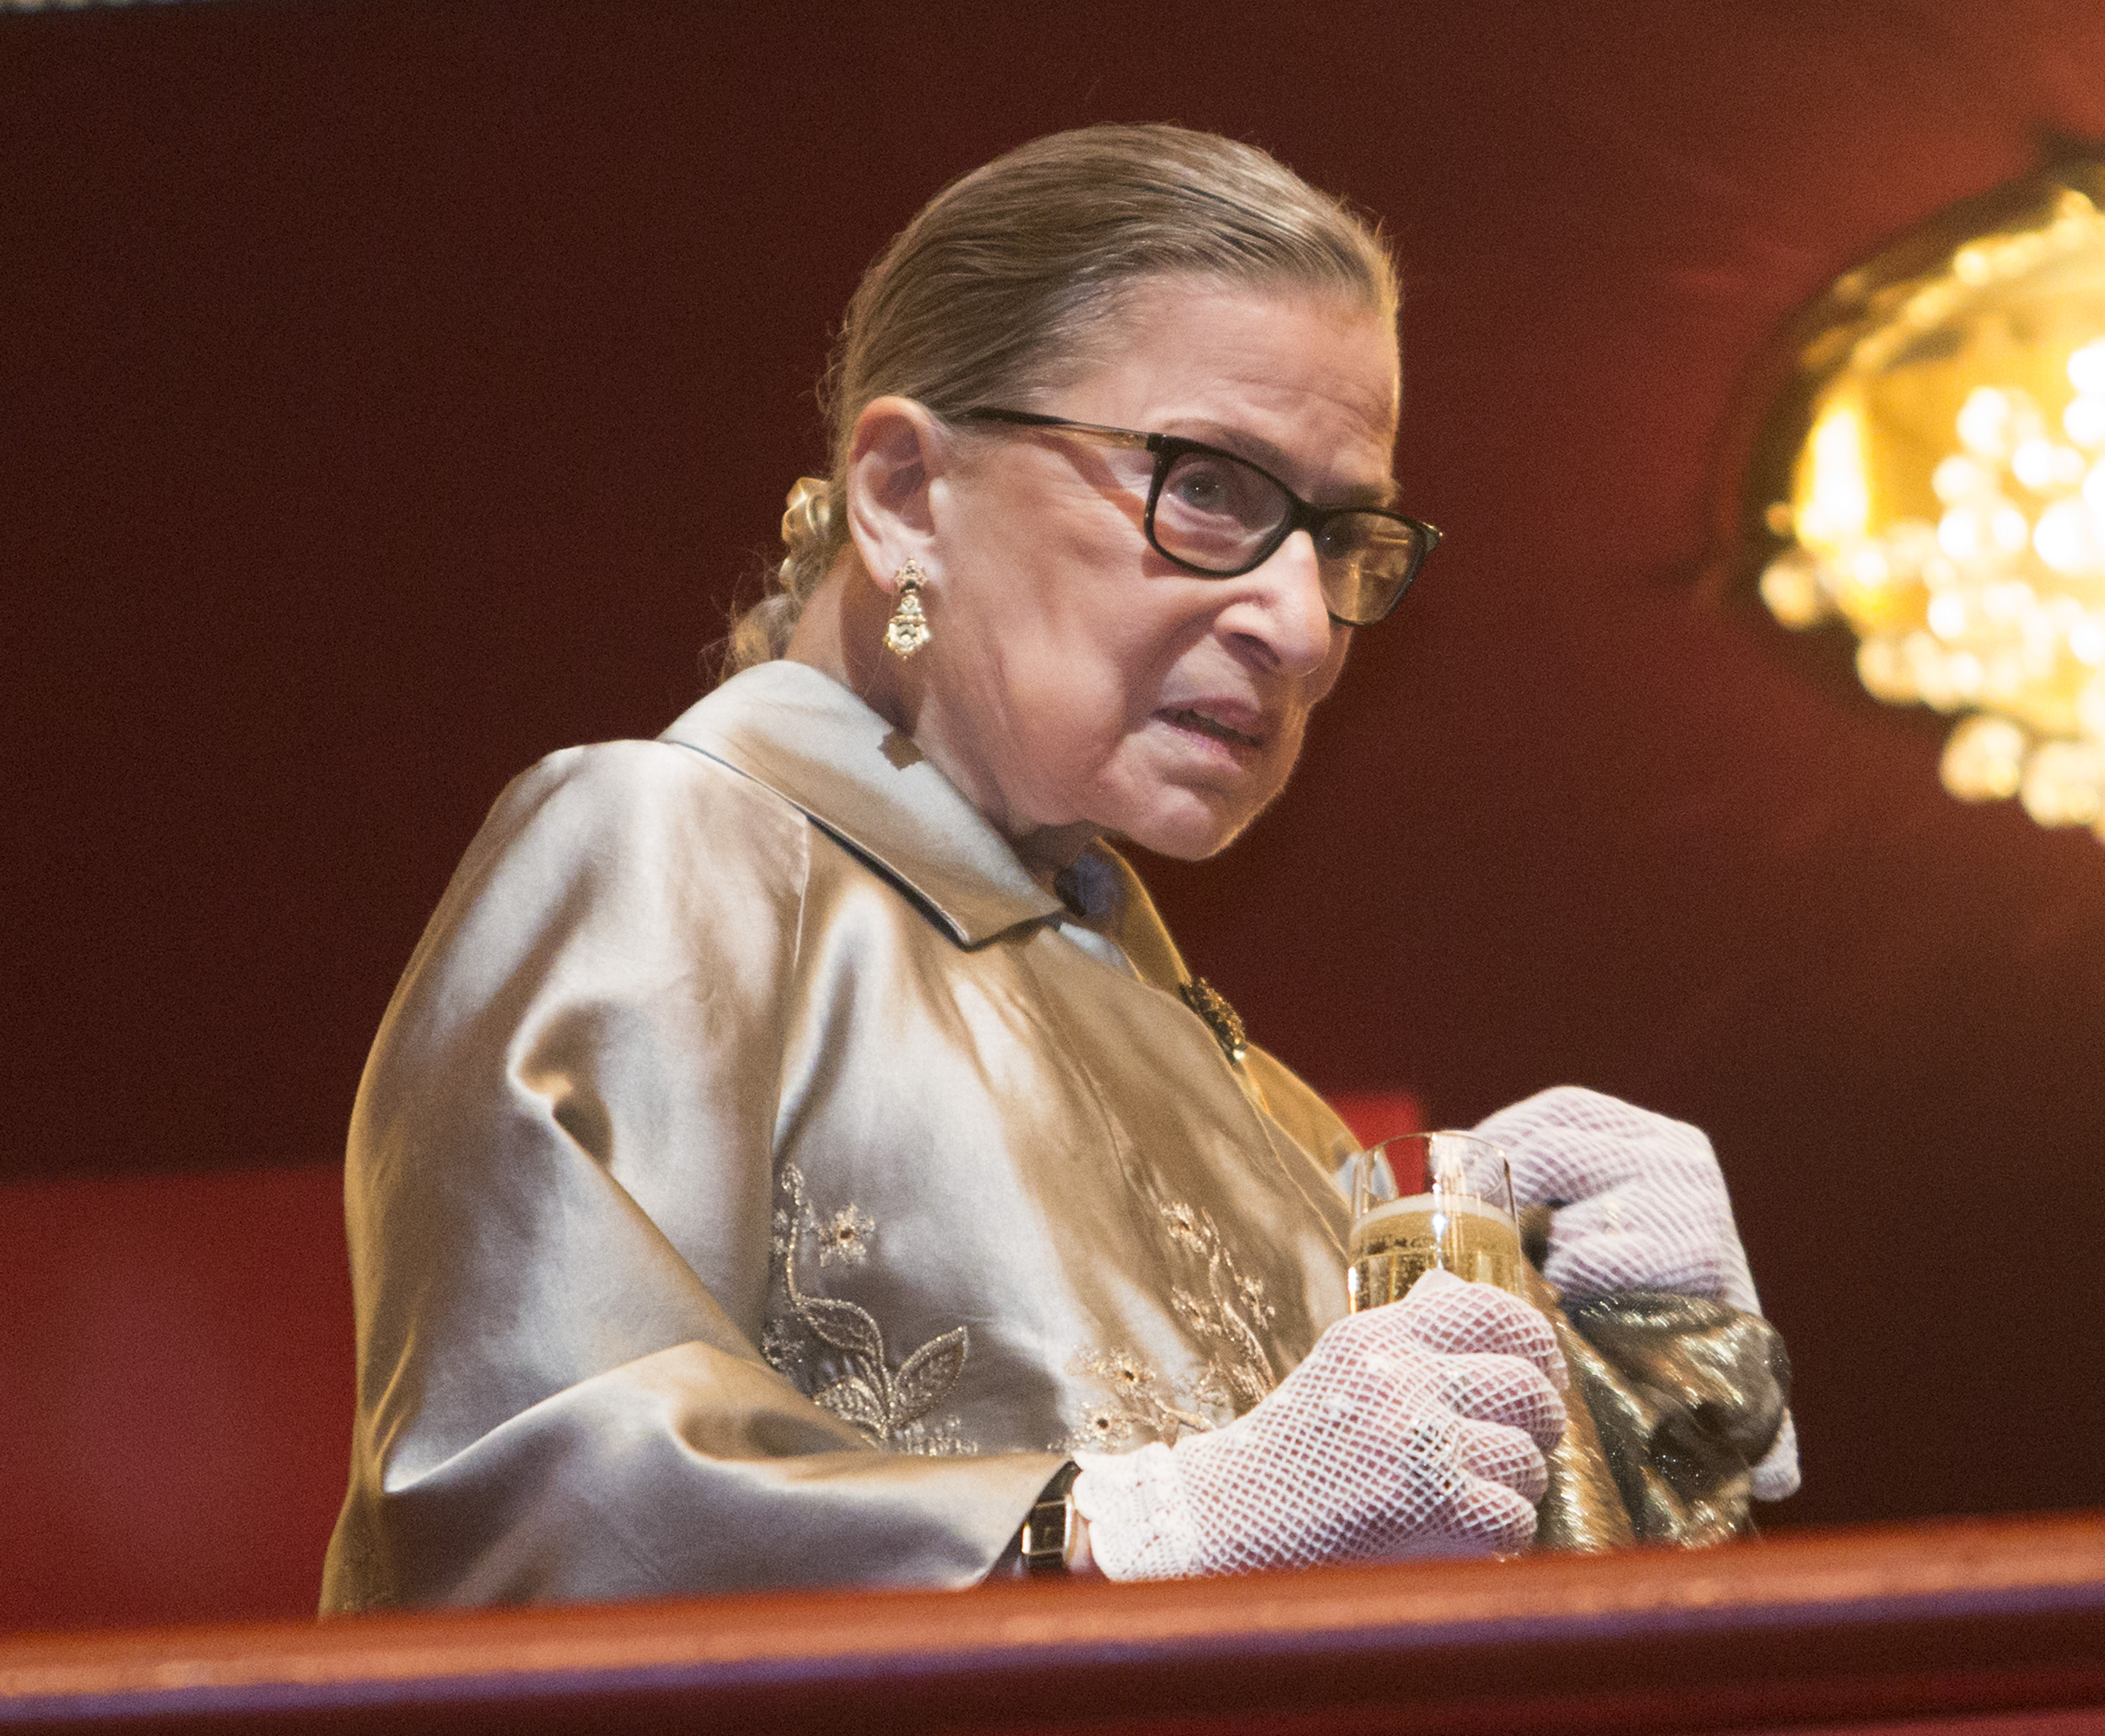 Supreme Court Justice Ruth Bader Ginsburg at the Kennedy Center Honors in Washington, D.C., on Dec. 6, 2015